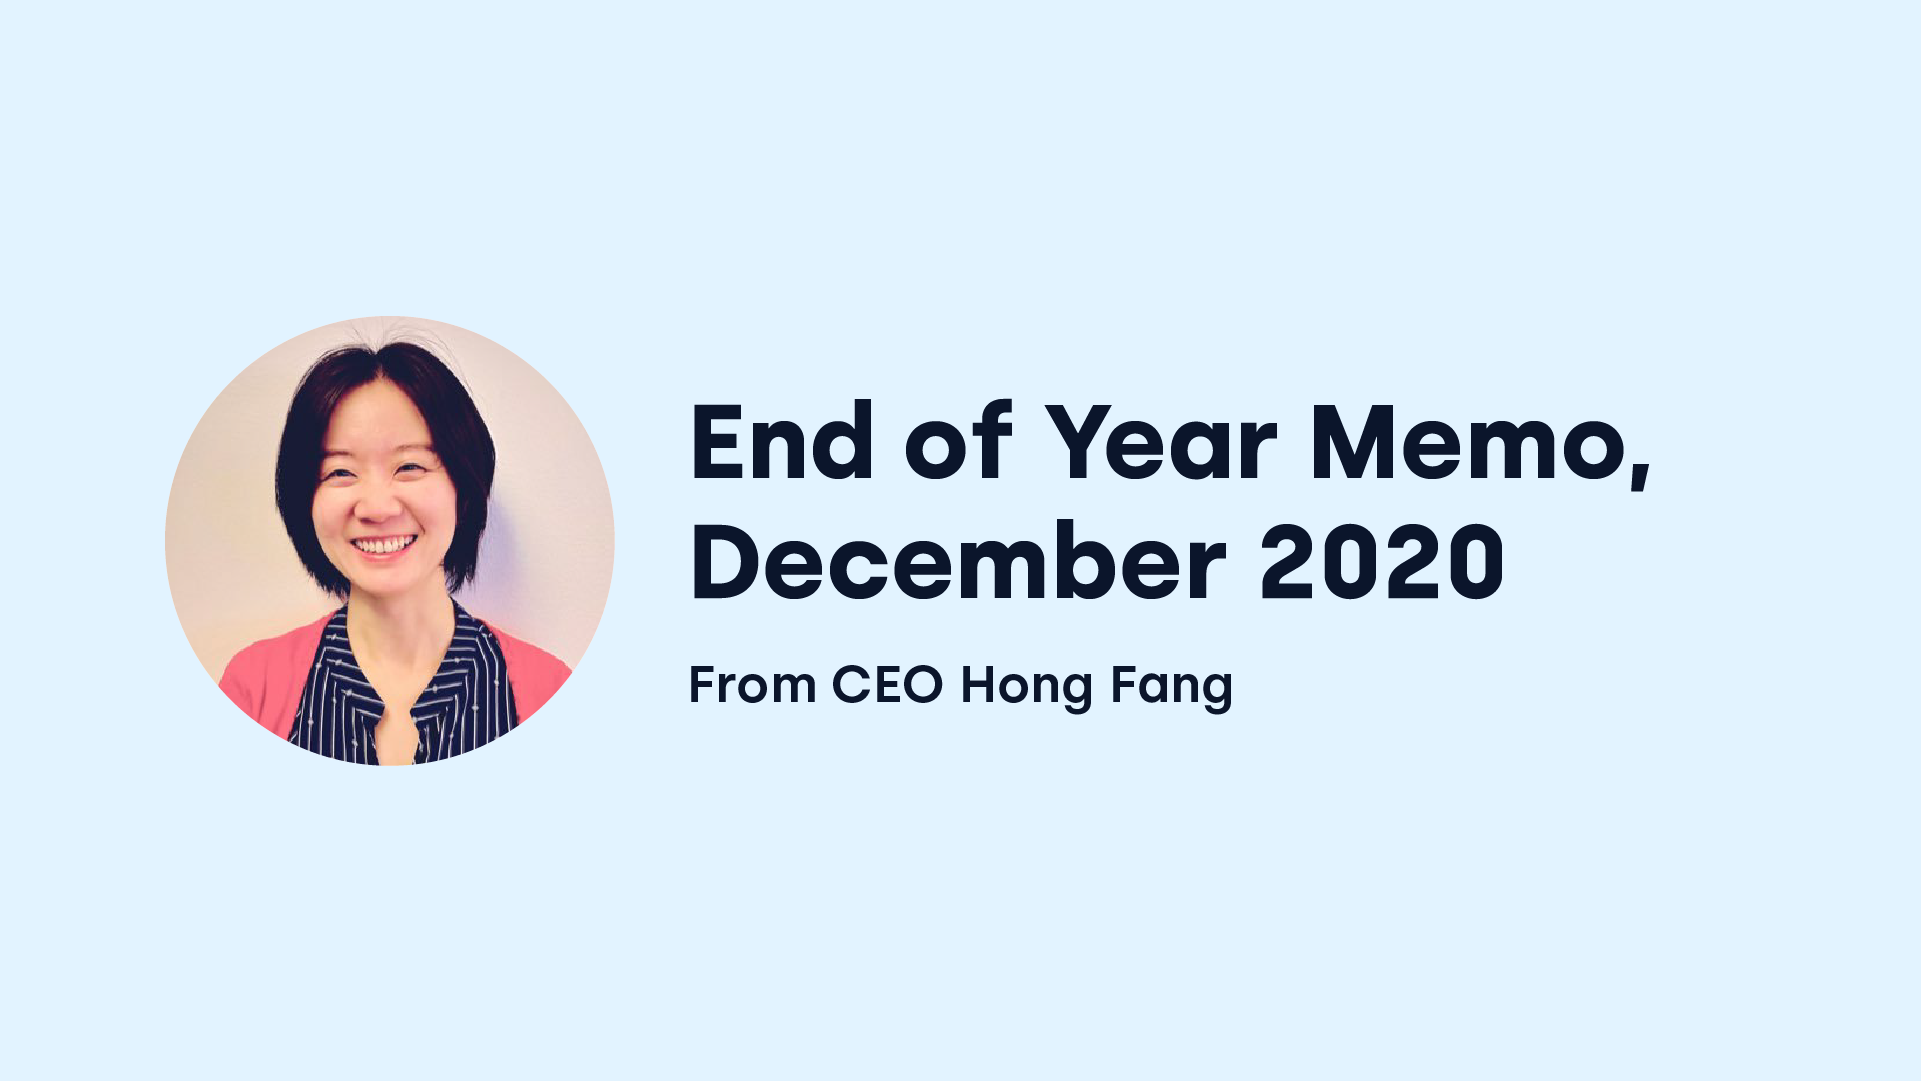 OKCoin CEO Hong Fang End of Year Memo 2020